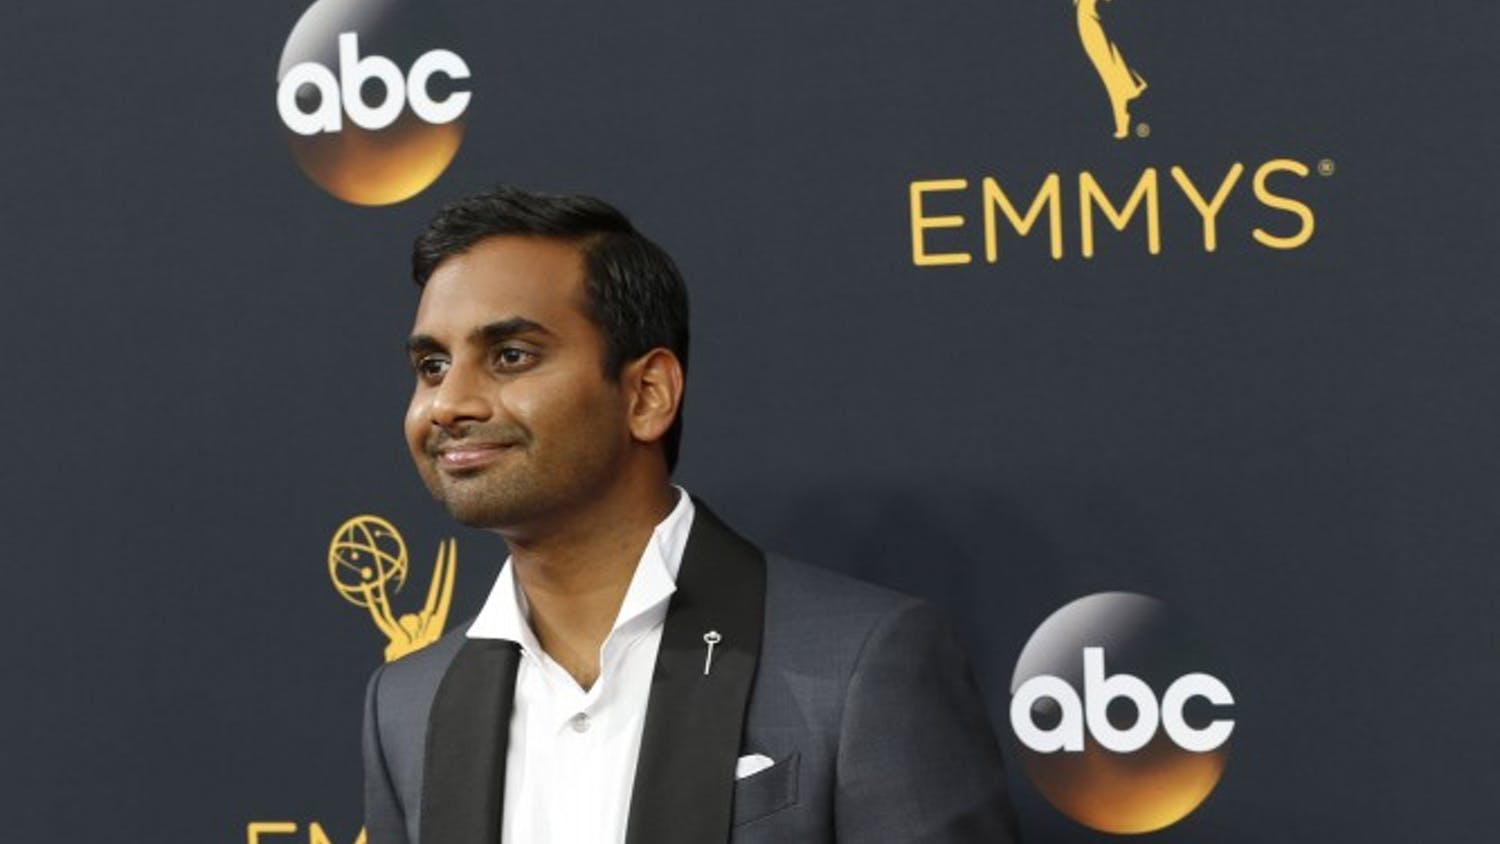 Aziz Ansari arrives at the 68th Primetime Emmy Awards at the Microsoft Theater in Los Angeles on Sunday, Sept. 18, 2016. (Kirk McKoy/Los Angeles Times/TNS)